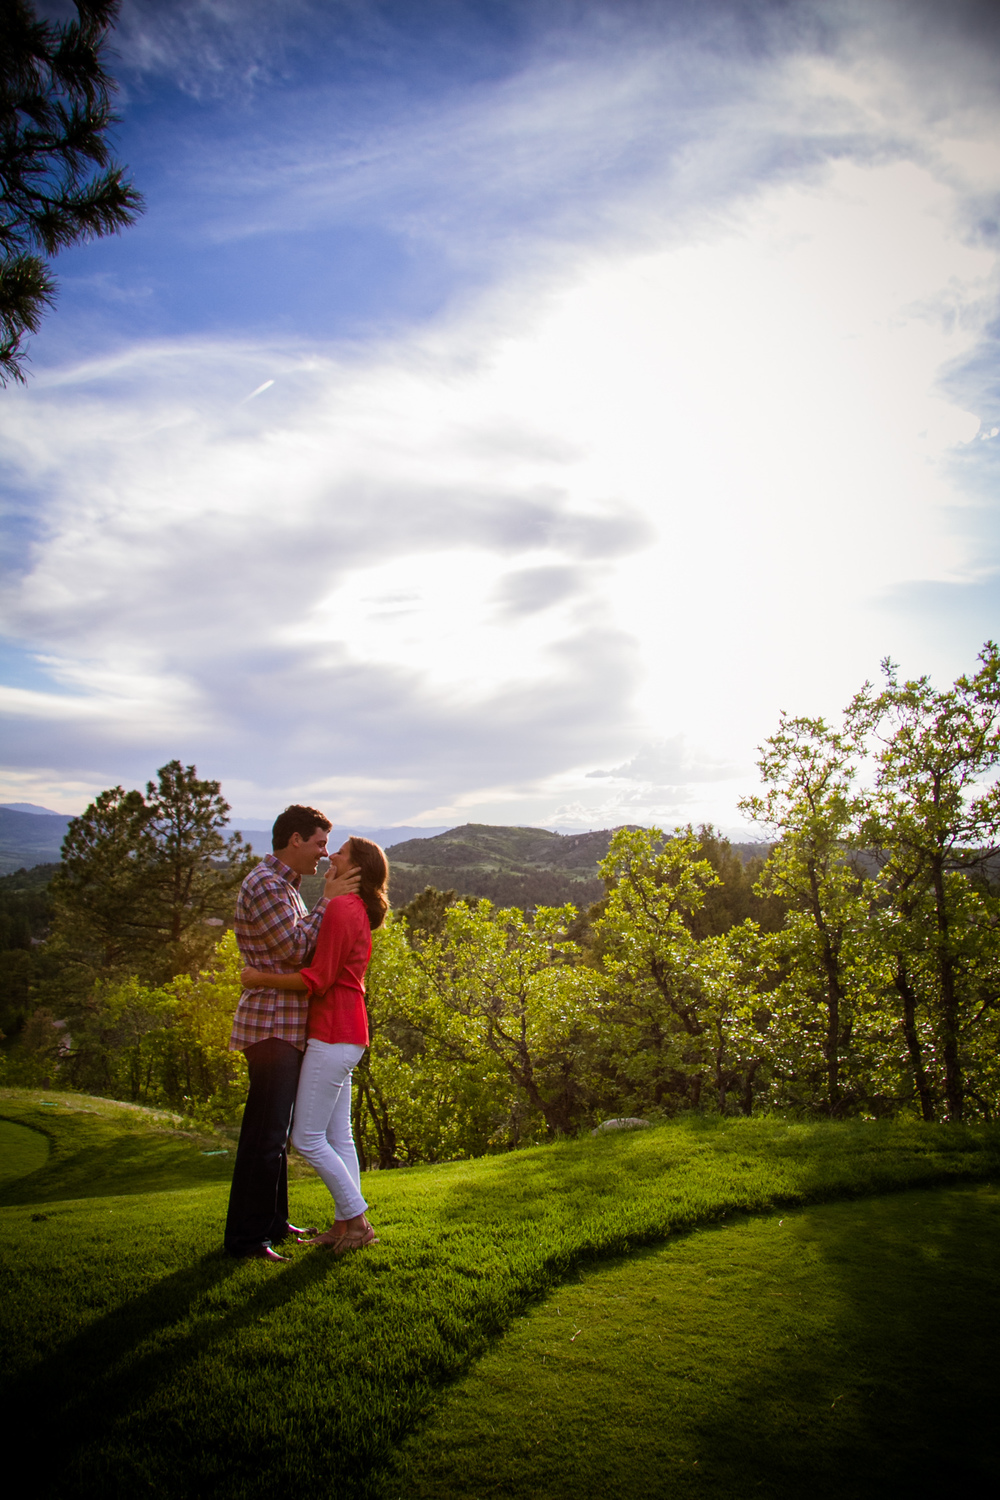 Castle_Pines_Colorado'_Engagement_Photos_006.JPG